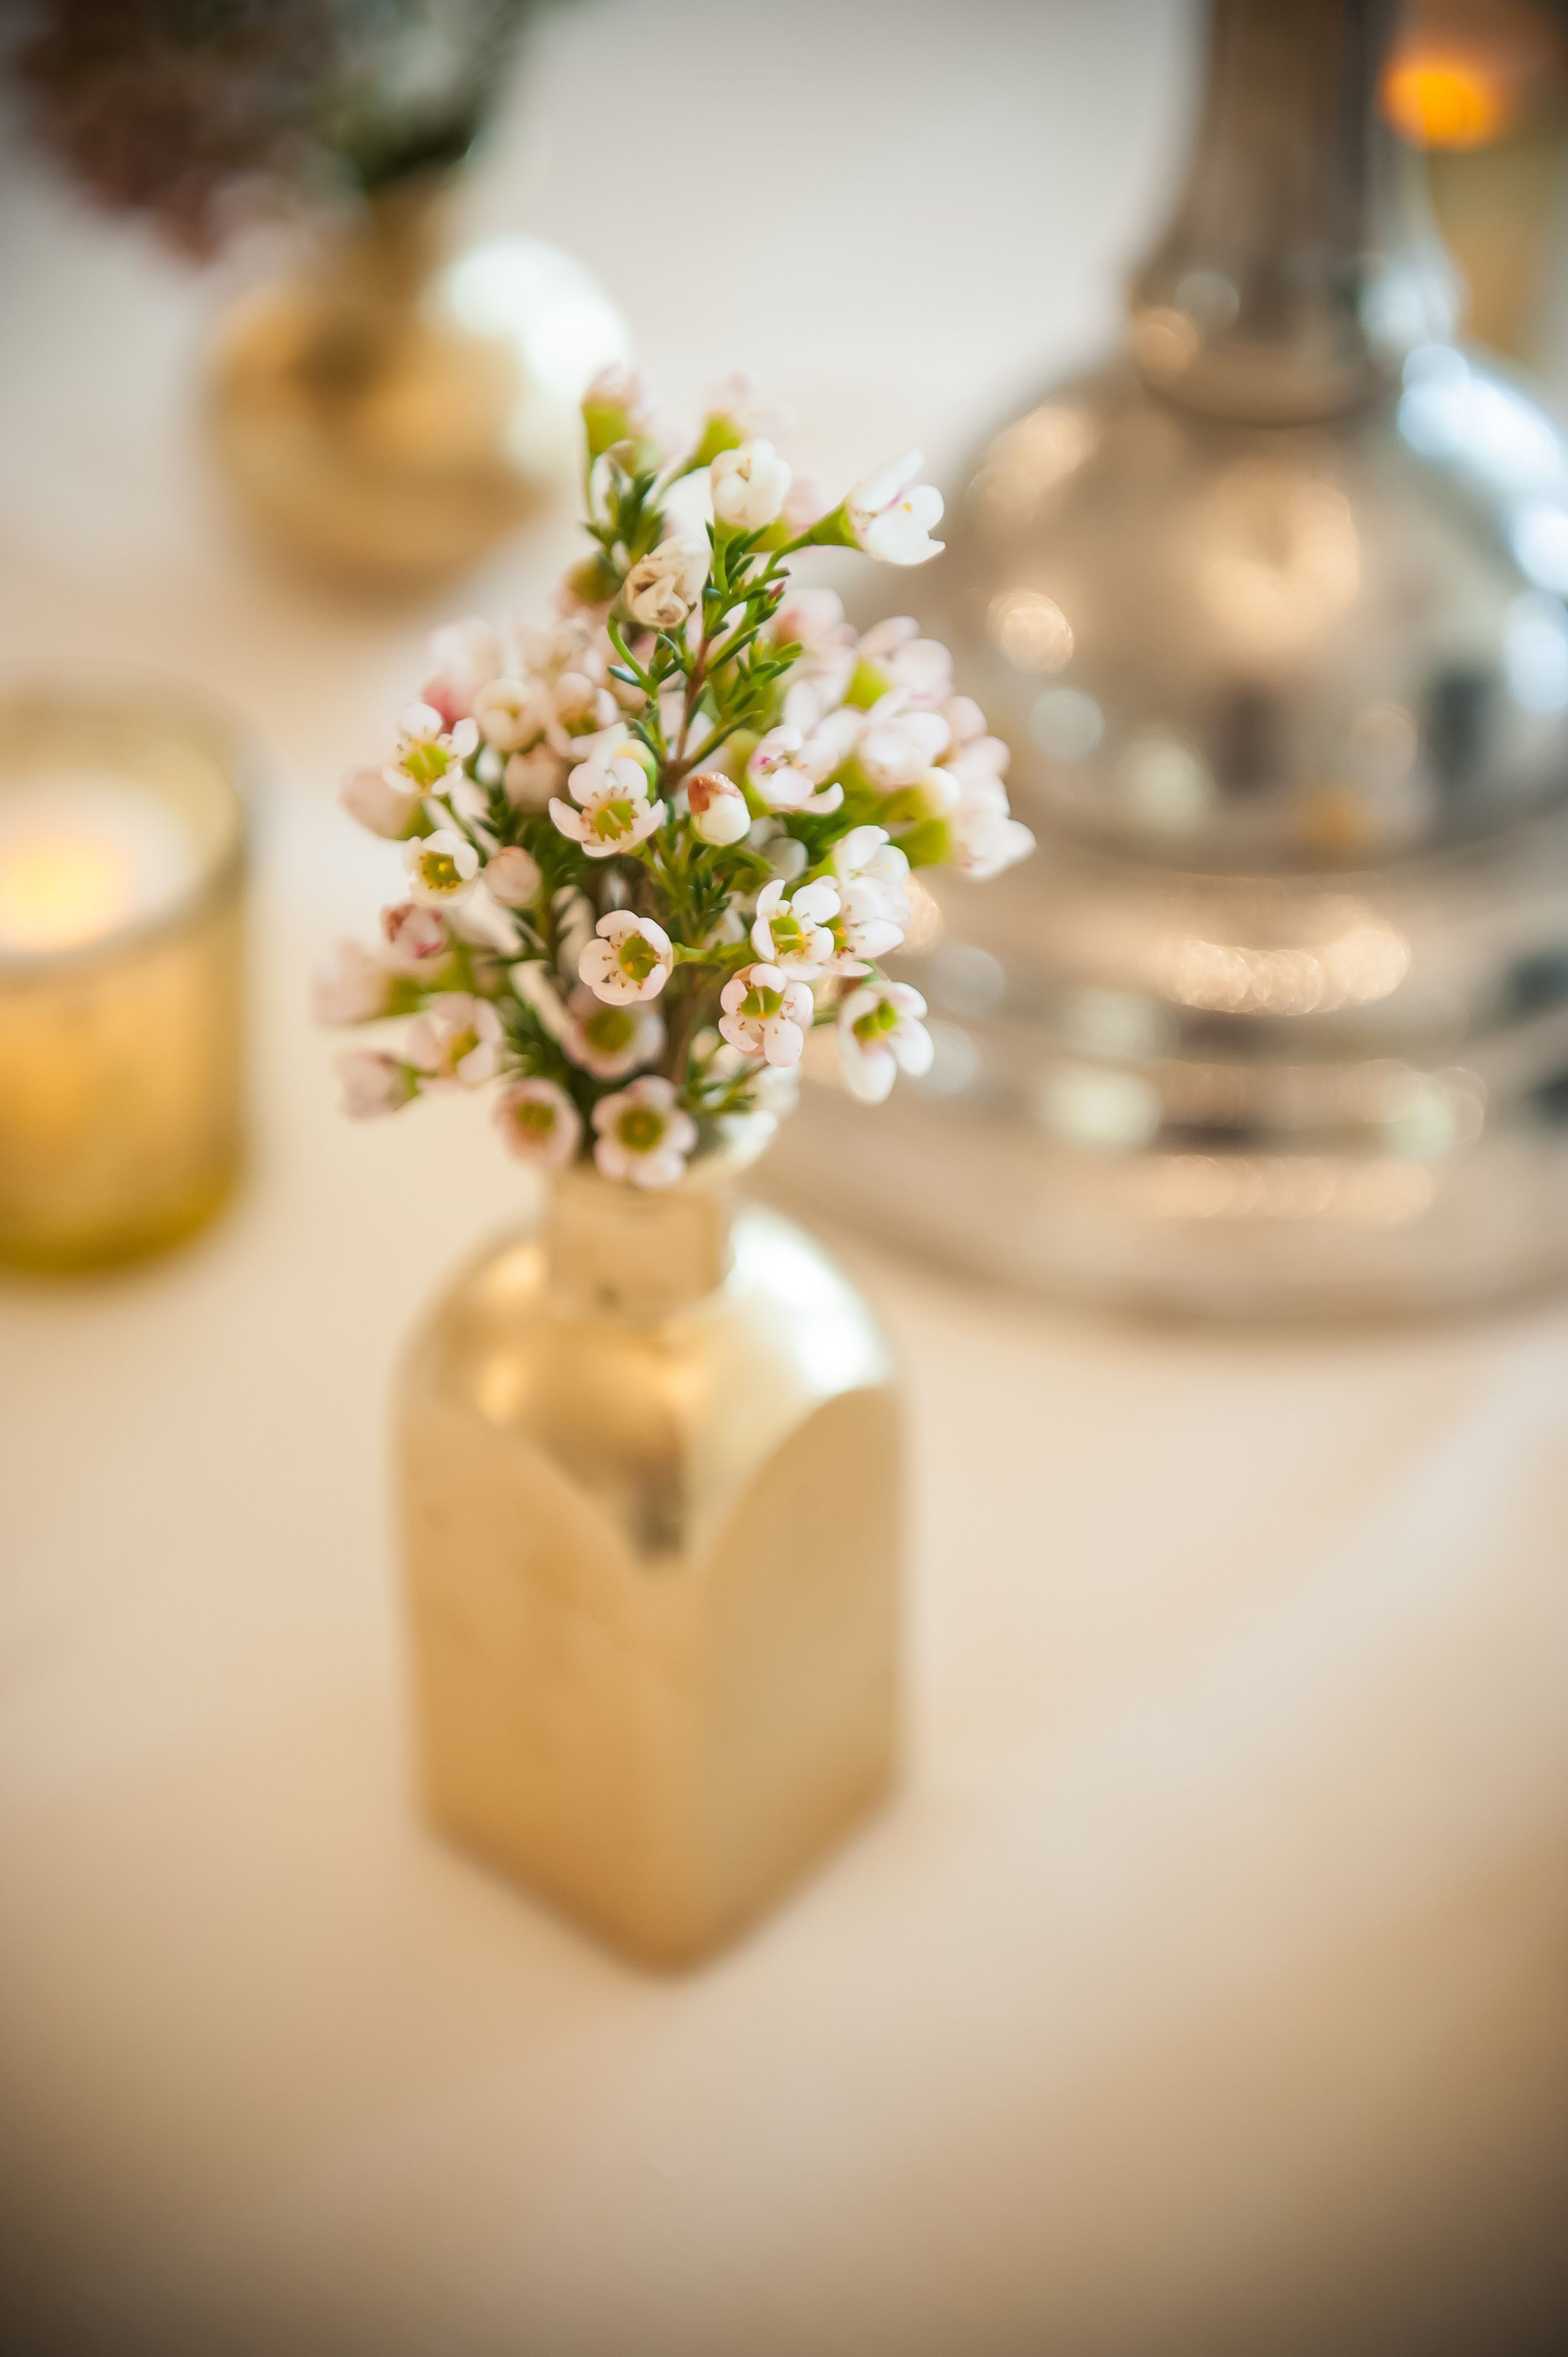 lalique vase with flowers of small gold vase photos h vases small clear 3200 24 cafe collection pertaining to small gold vase photograph how about little gold bud vases with white waxflowers for the of